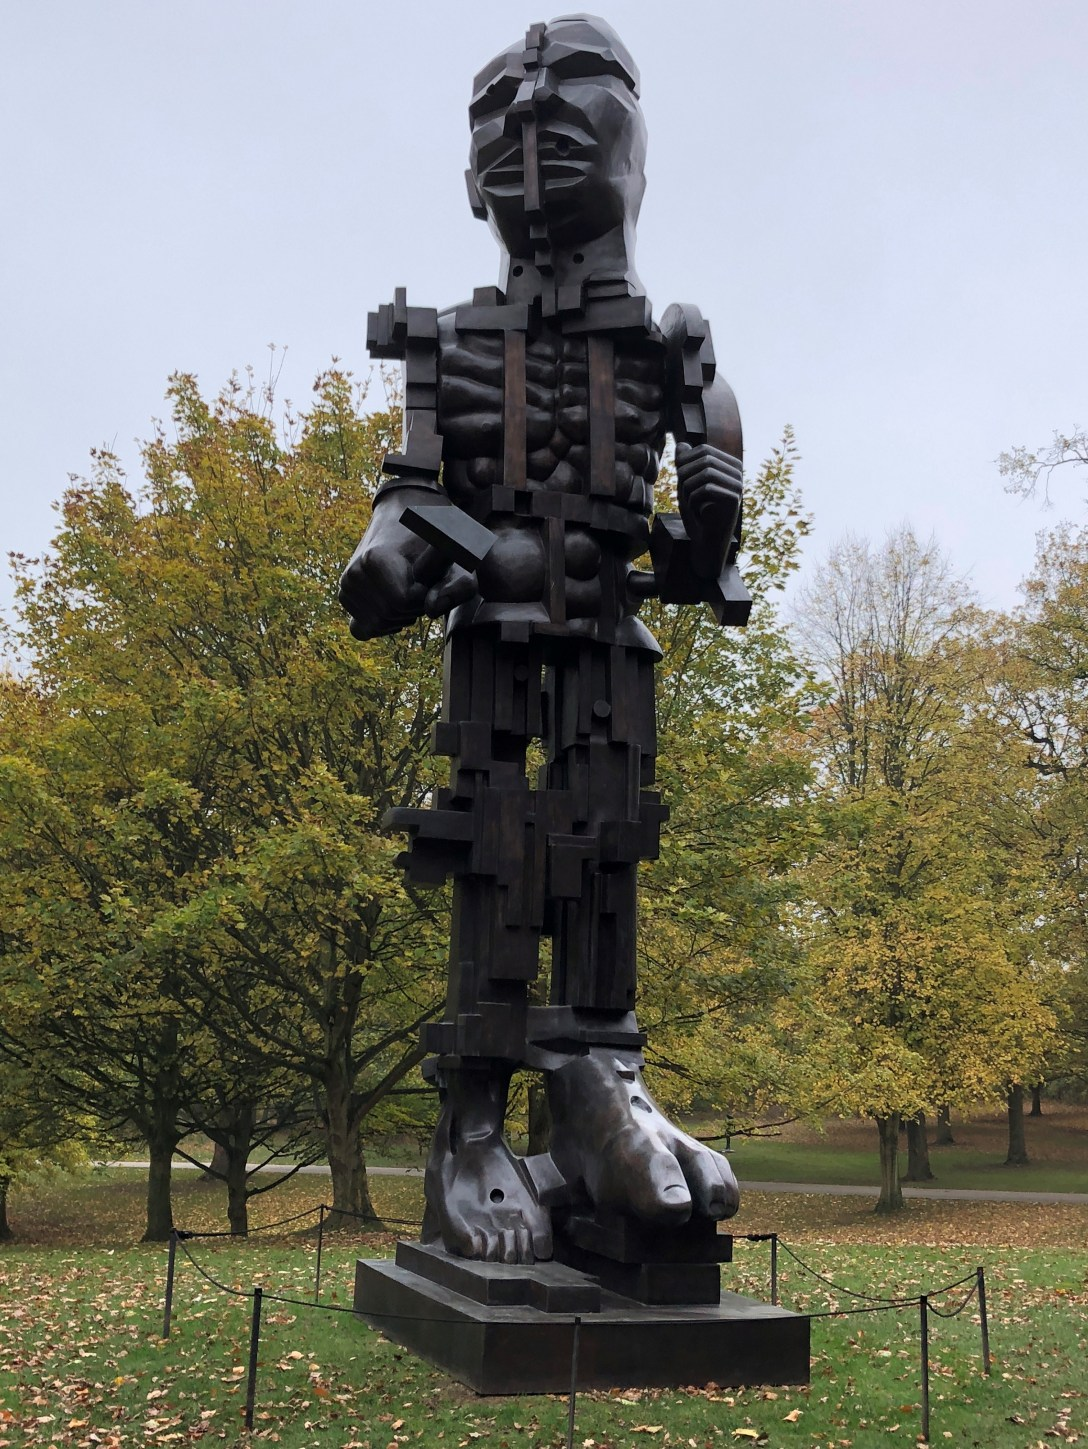 Monumental 'Bronze' 'sculpture' by 'artist' Eduardo Paolozzi, 'cast' at Pangolin Editions